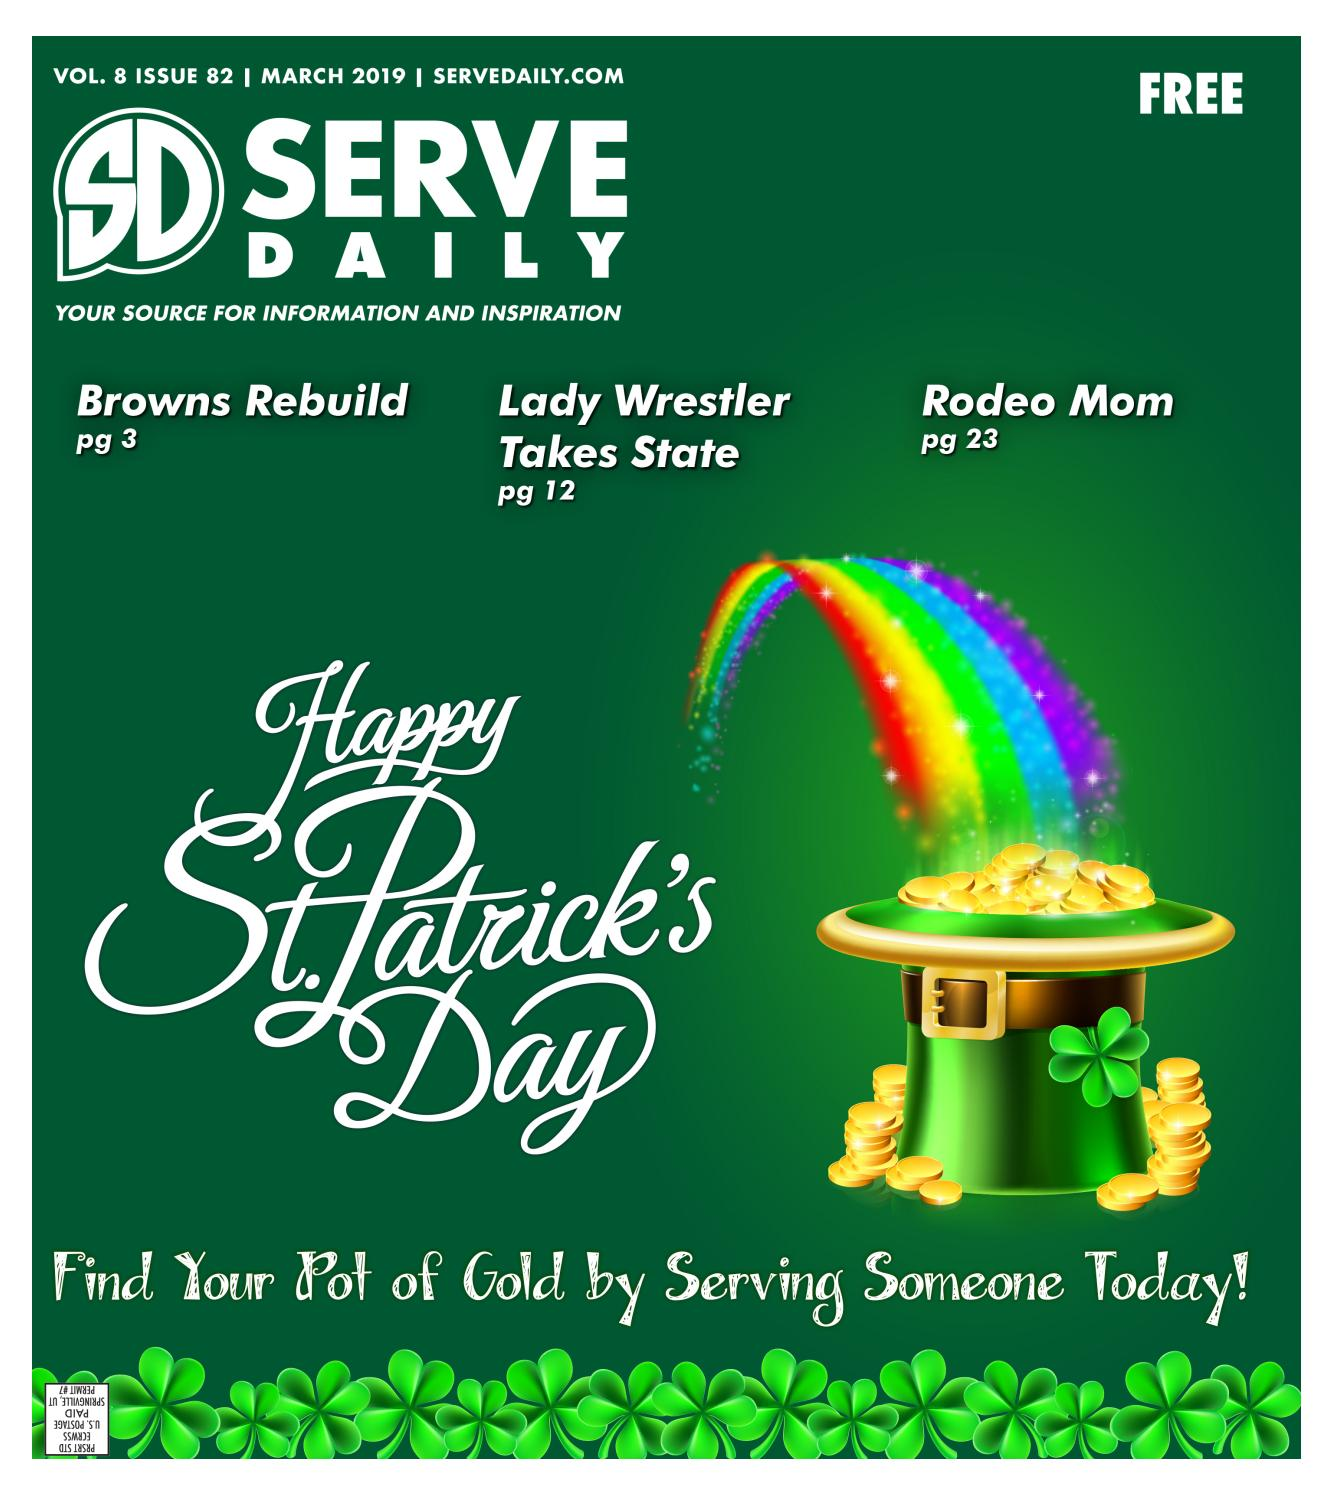 Serve Daily Volume 8, Issue 82 March 2019 by Serve Daily - issuu